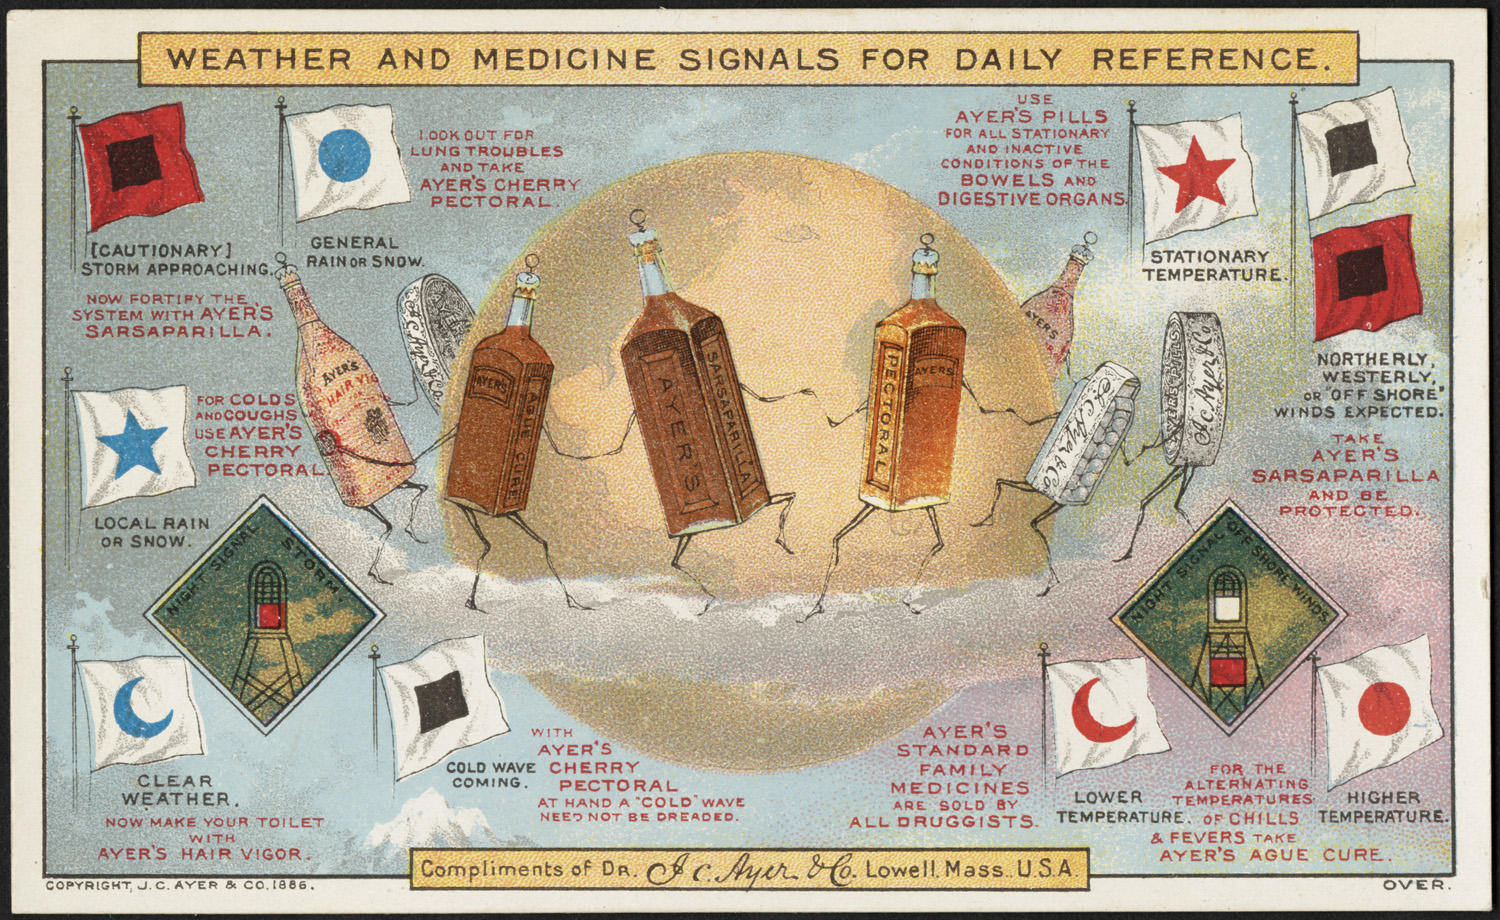 Image of an 1886 poster, colorful, depicting a number of signals or flags bearing symbols for various weather conditions and medicine types, at the center of the image is a circle of dancing medicine bottles and containers